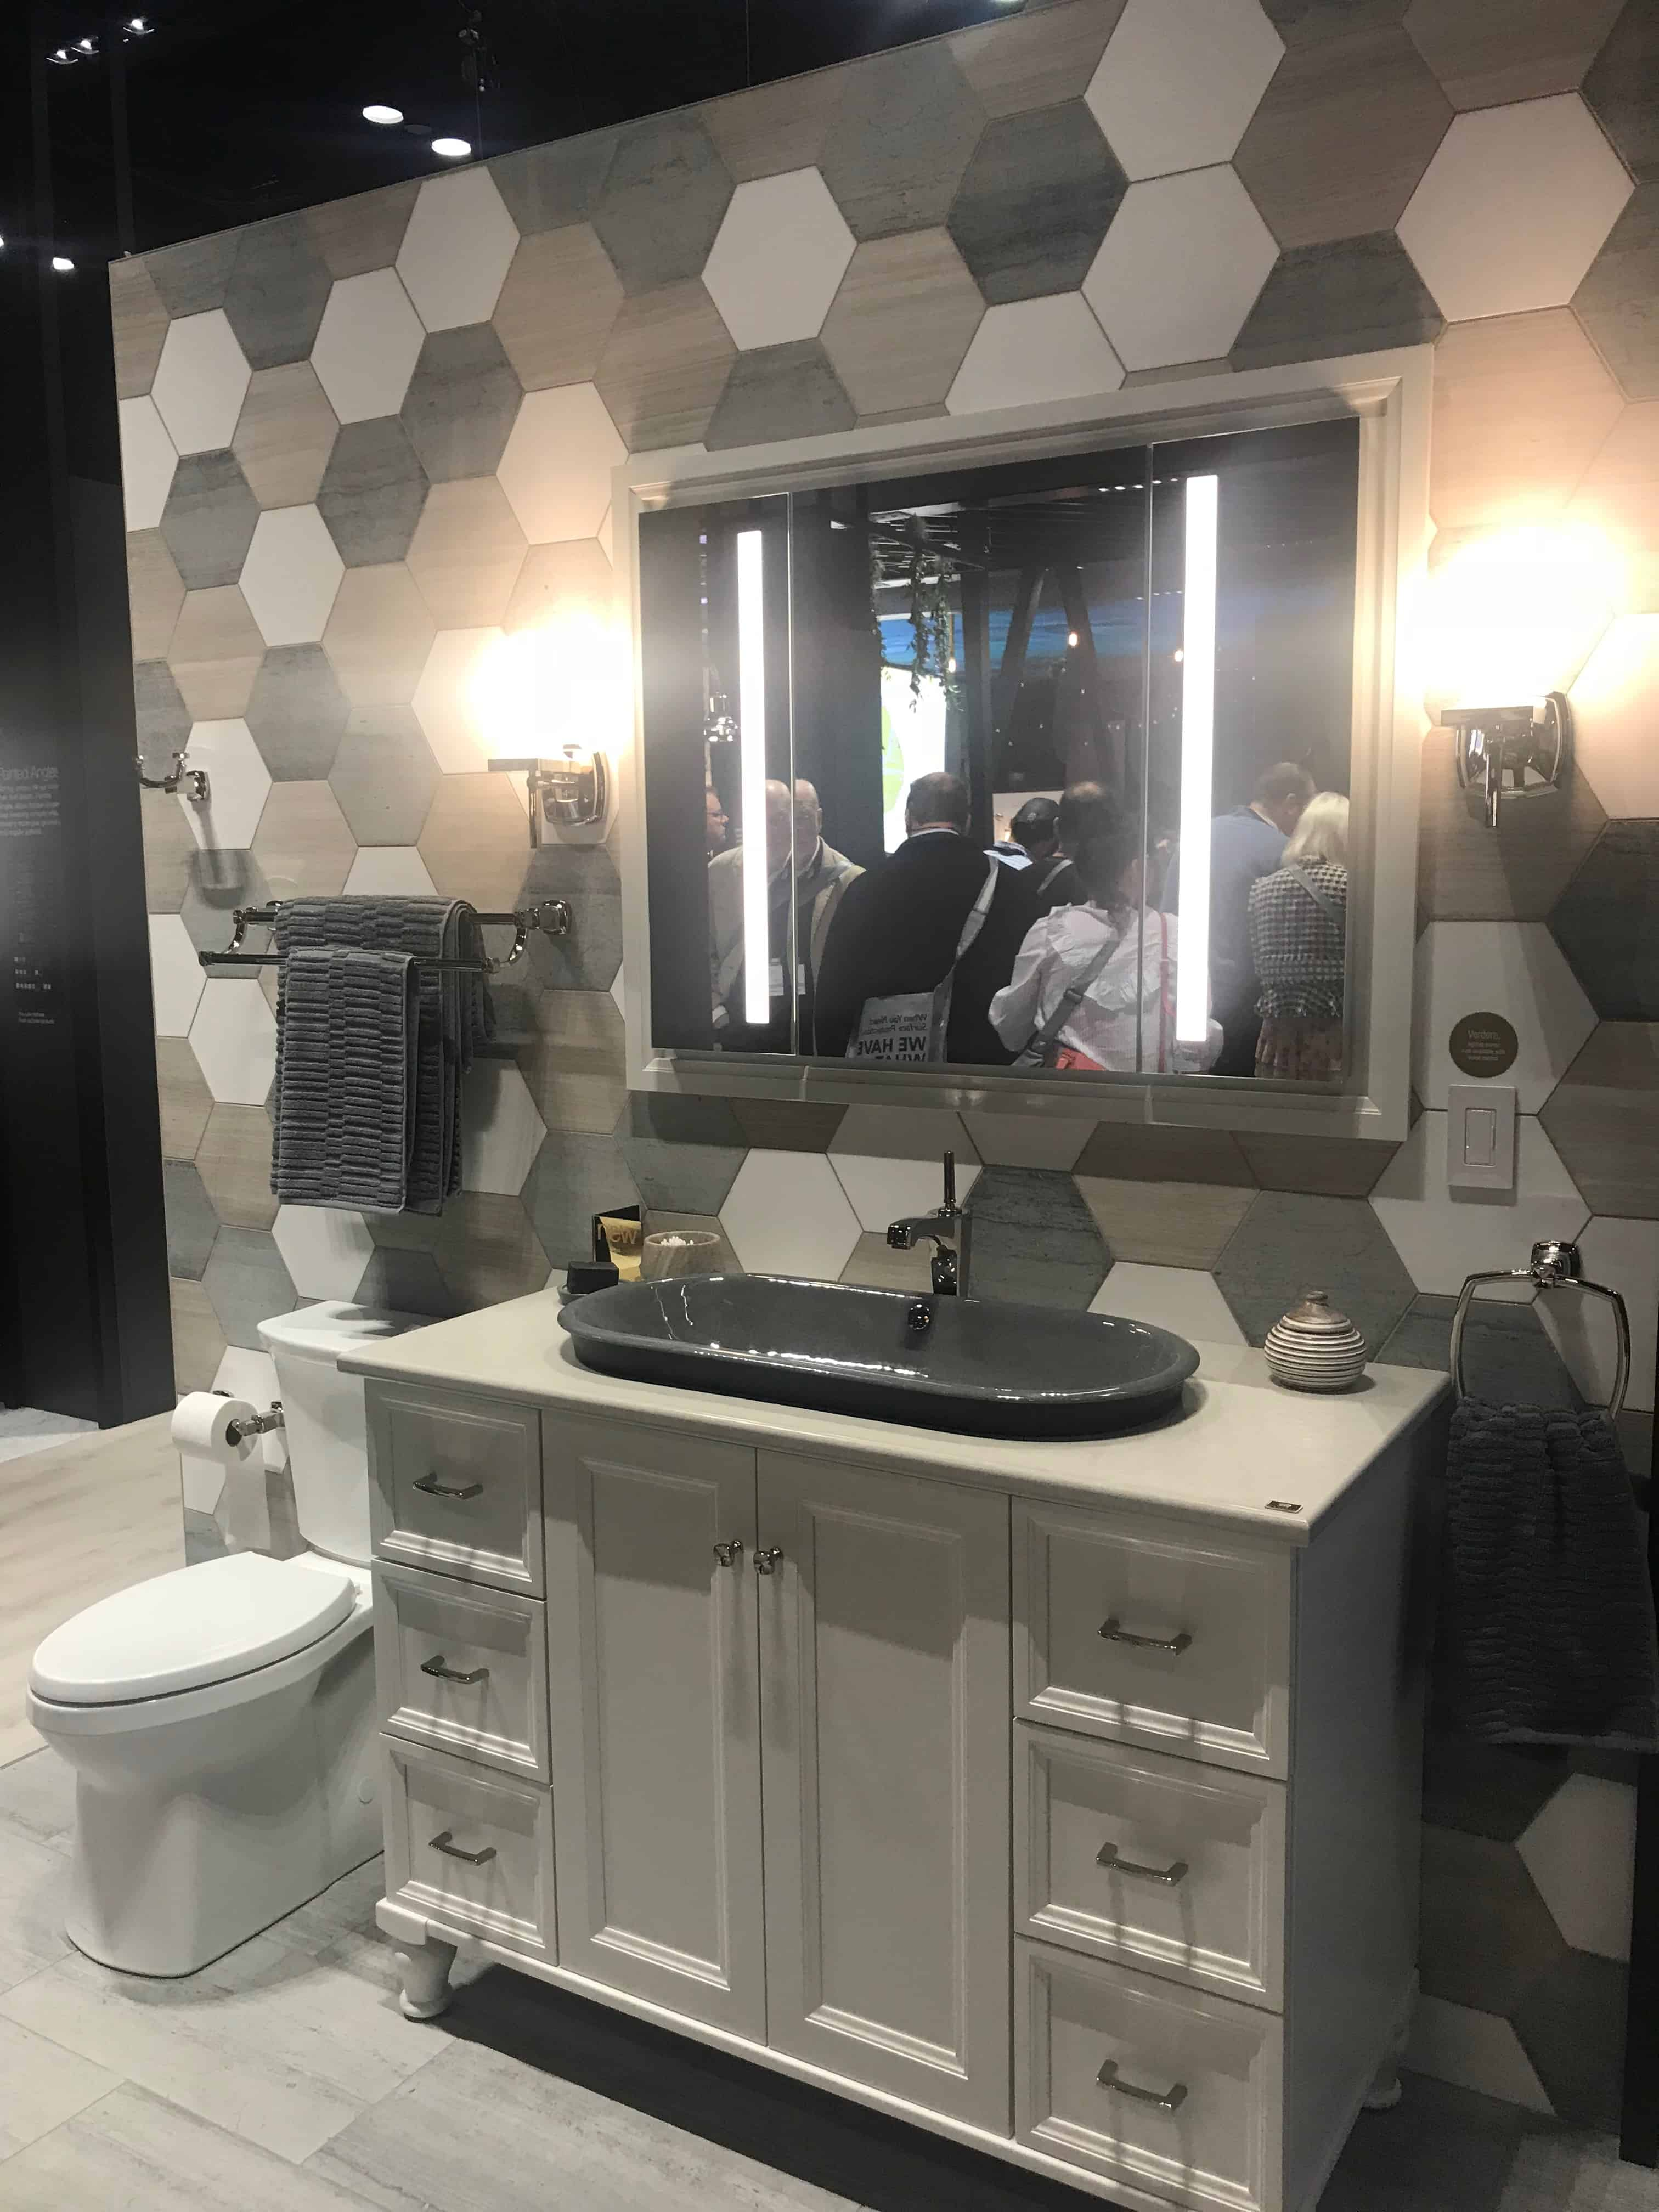 The Verdera Lighted Mirrors by Kohler with Amazon Alexa